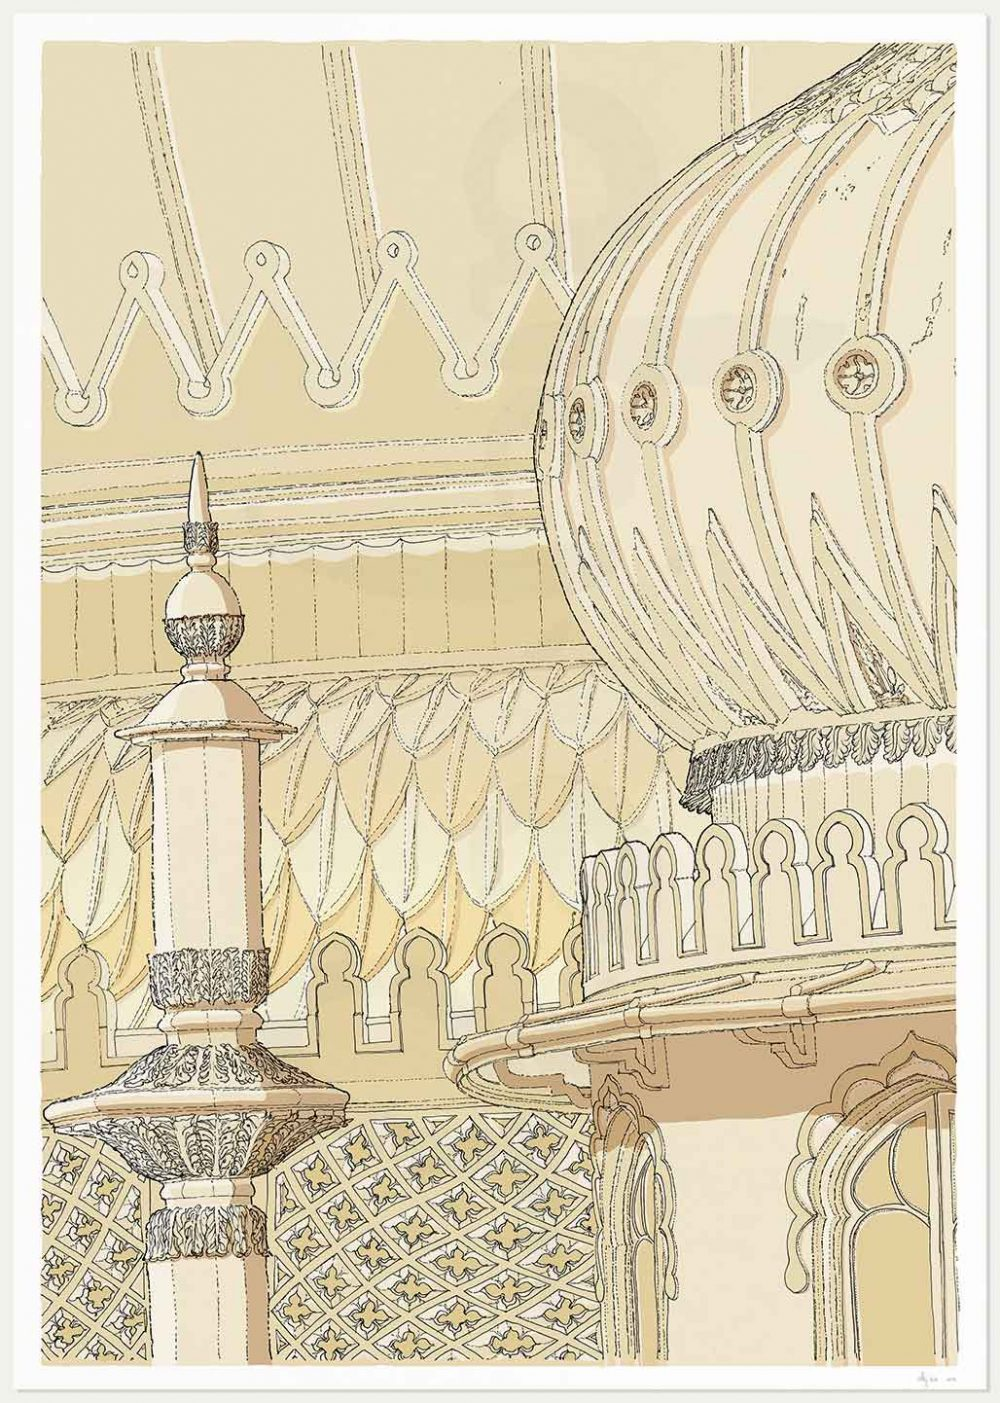 print named Brighton Pavilion Finial and Domes Pearl by artist alej ez